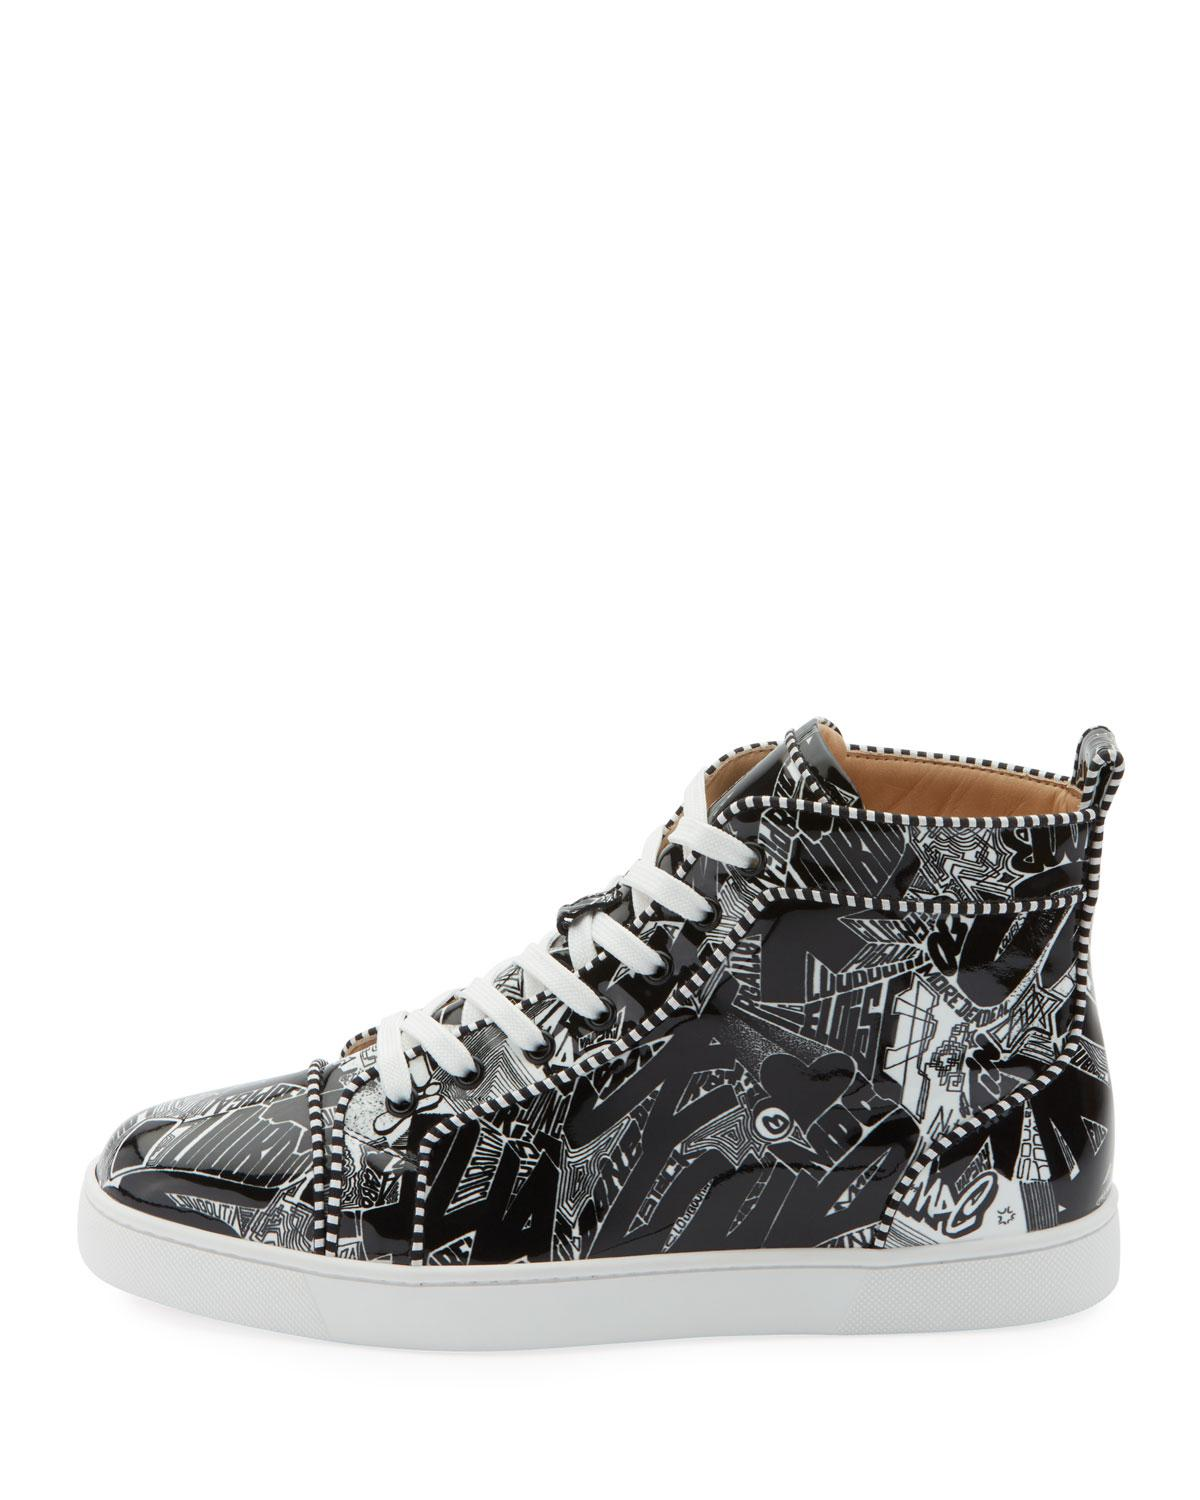 0d026d6e95d9 Lyst - Christian Louboutin Men s Louis Orlato Graffiti High-top Sneakers in  Black for Men